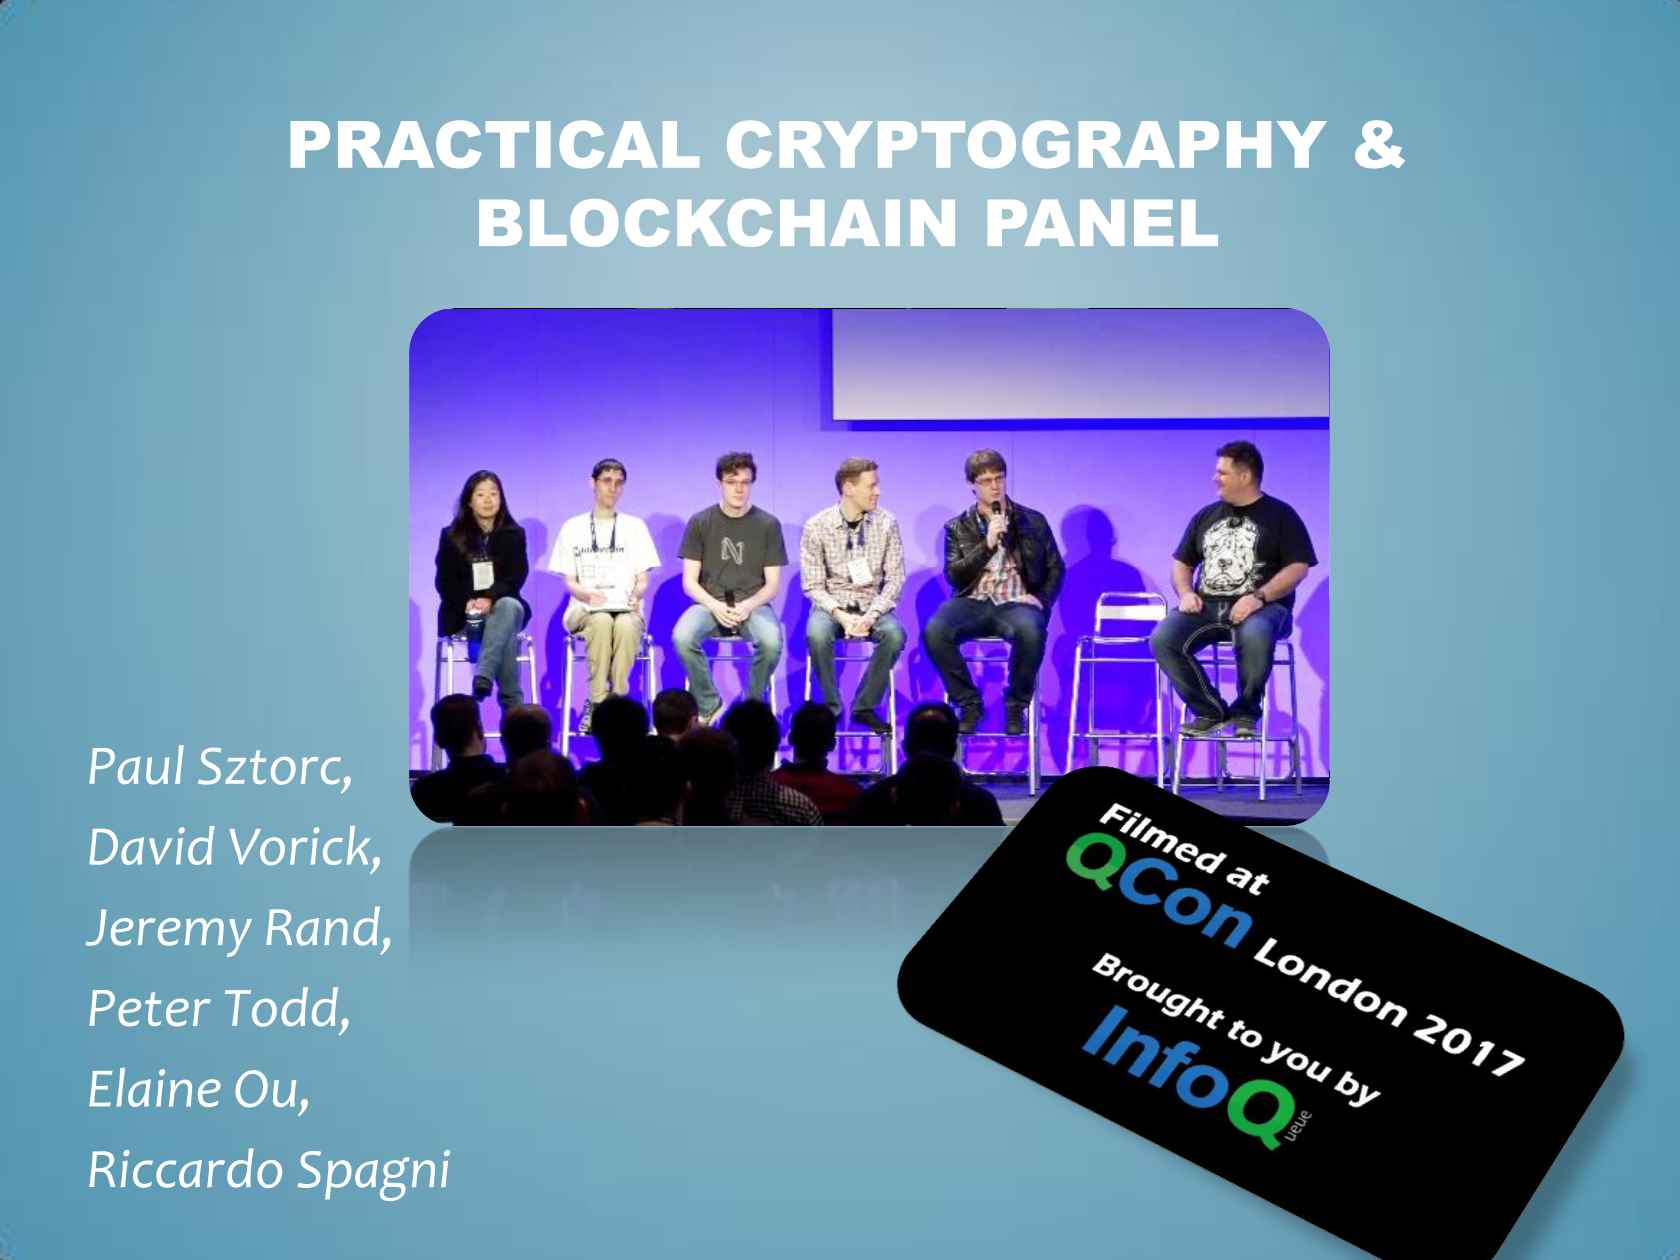 Practical Cryptography & Blockchain Panel